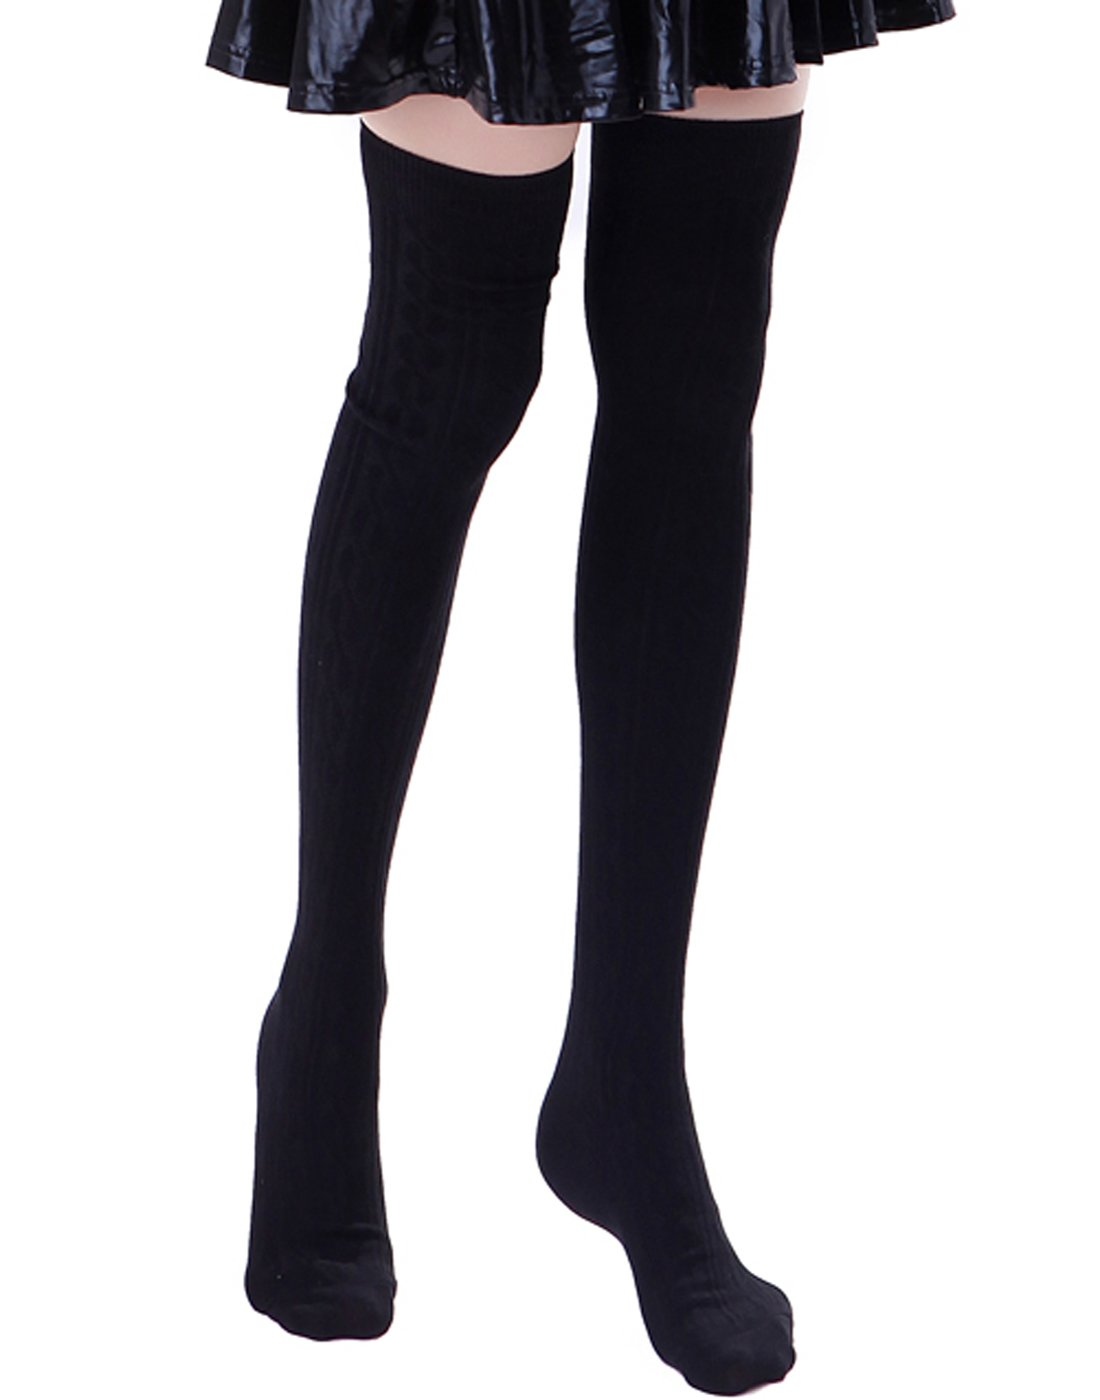 HDE Womens Opaque Solid Color Cable Knit Over the Knee Thigh High Stocking Socks